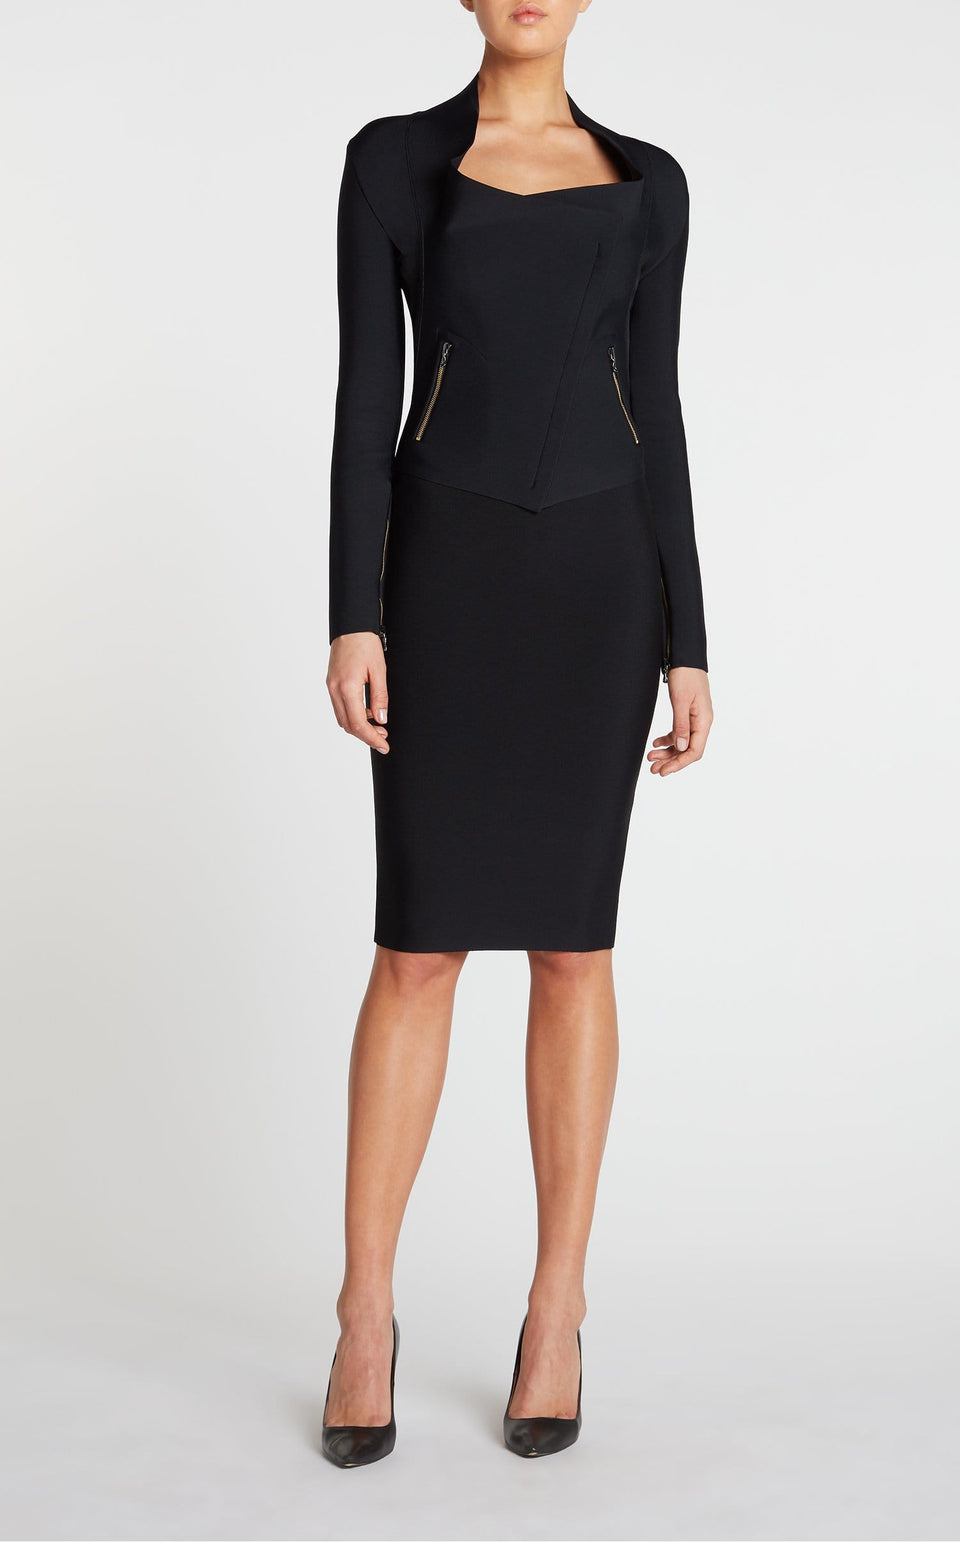 May Skirt In Black from Roland Mouret